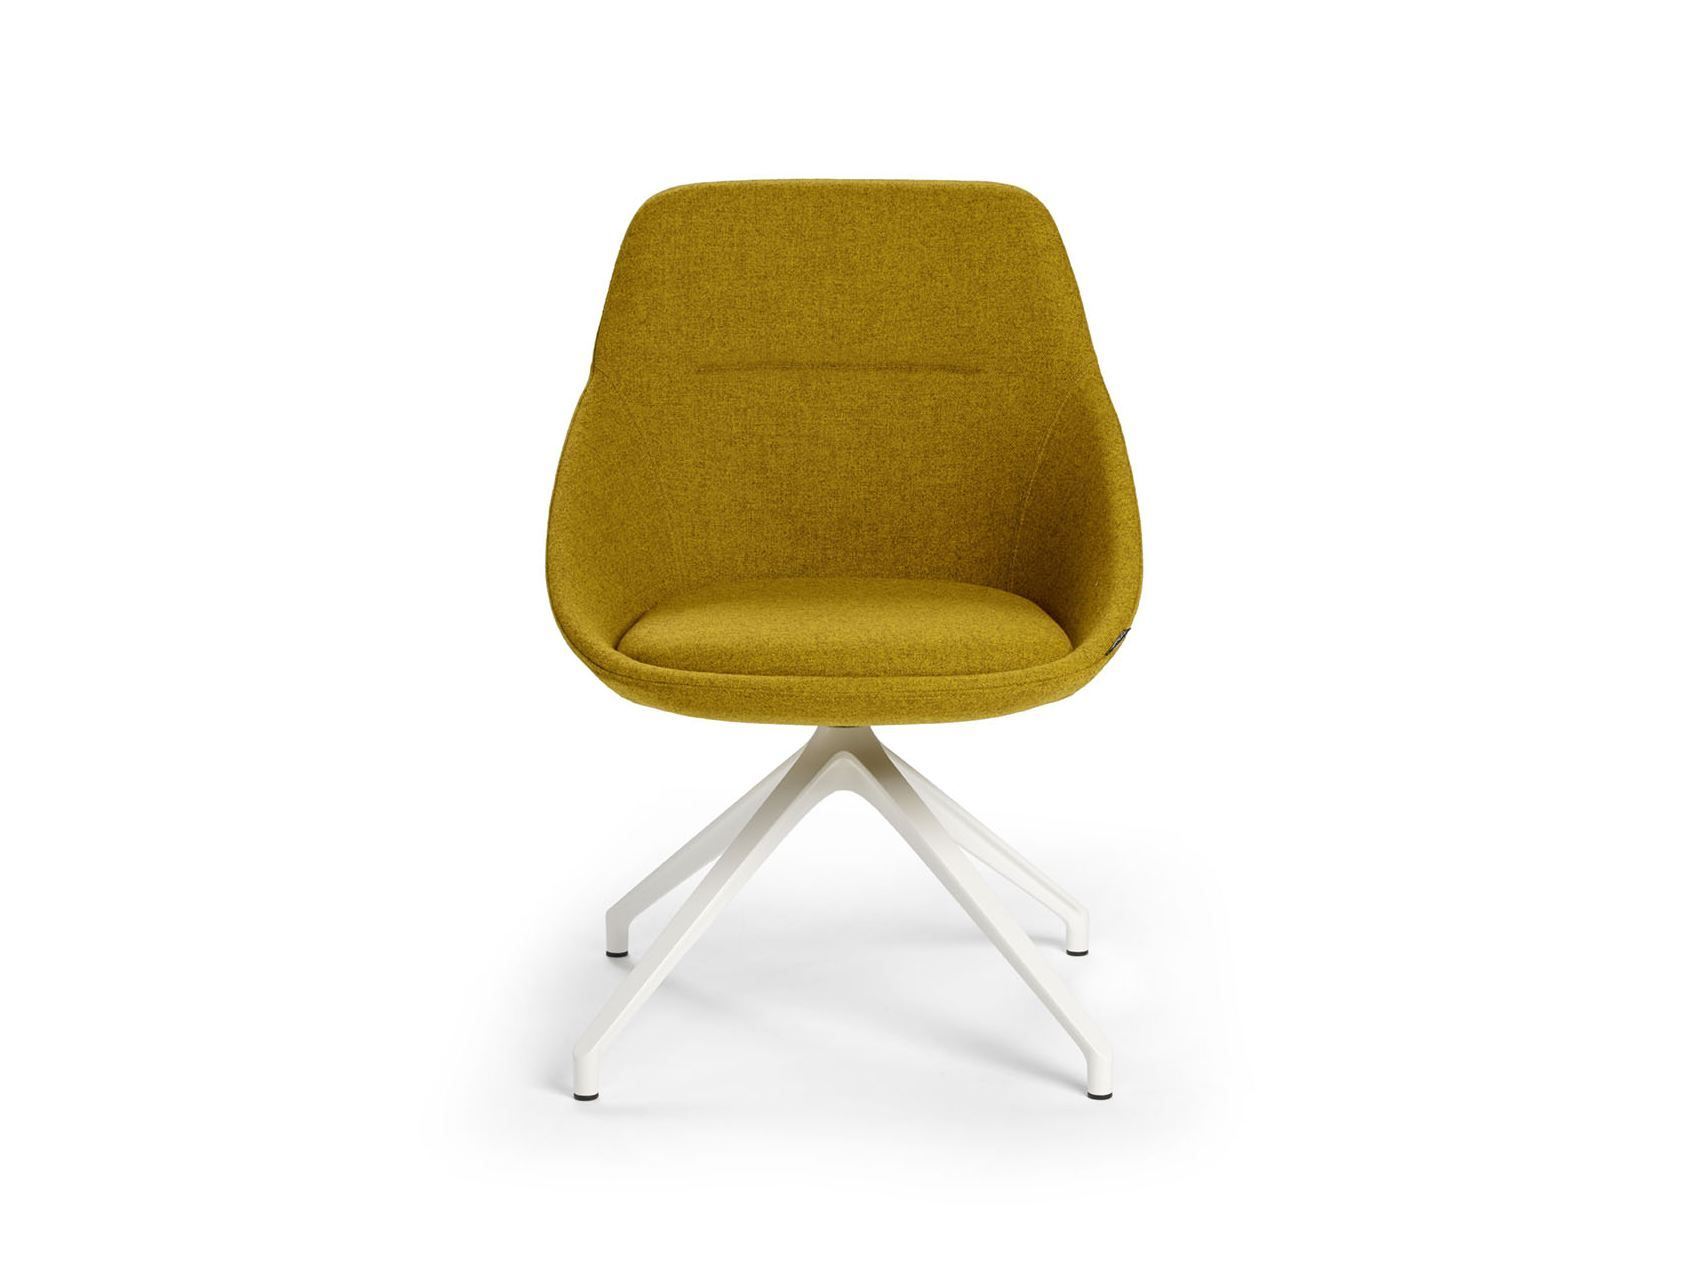 EZY LOW by Offecct design Christophe Pillet